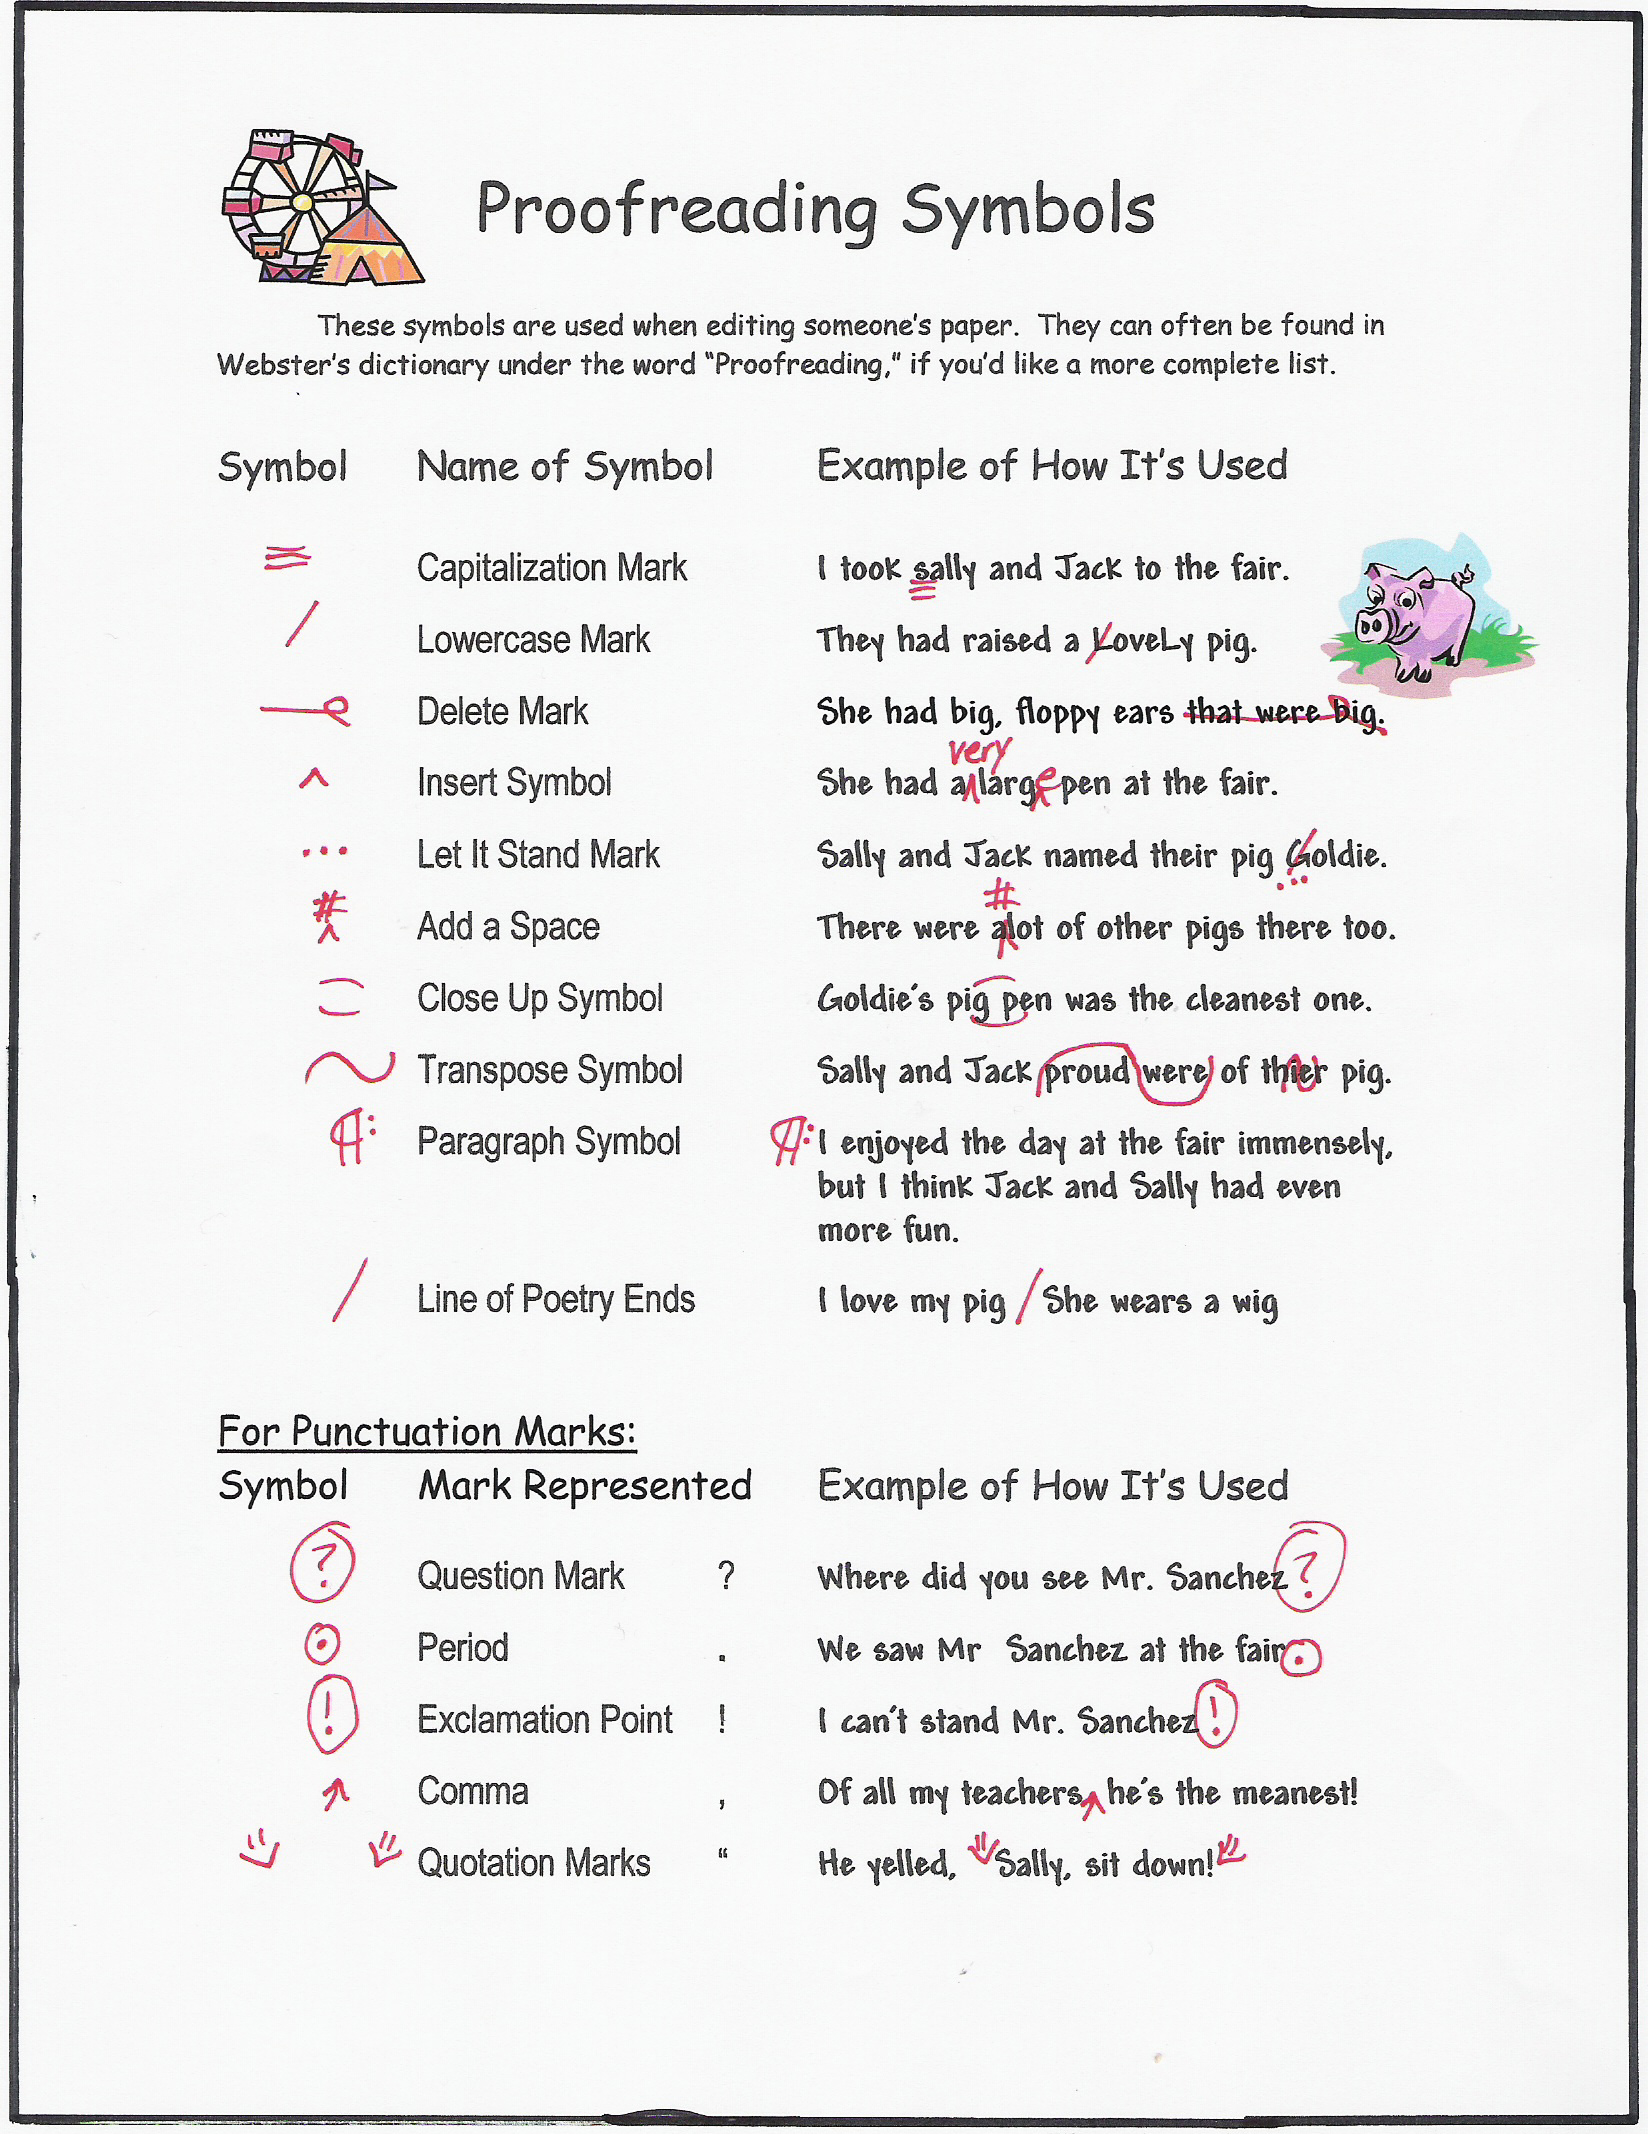 Printables Proofreading Marks Worksheet clipboards blog posts offer information on how students can make image of some the most common proofreading symbols used by editors